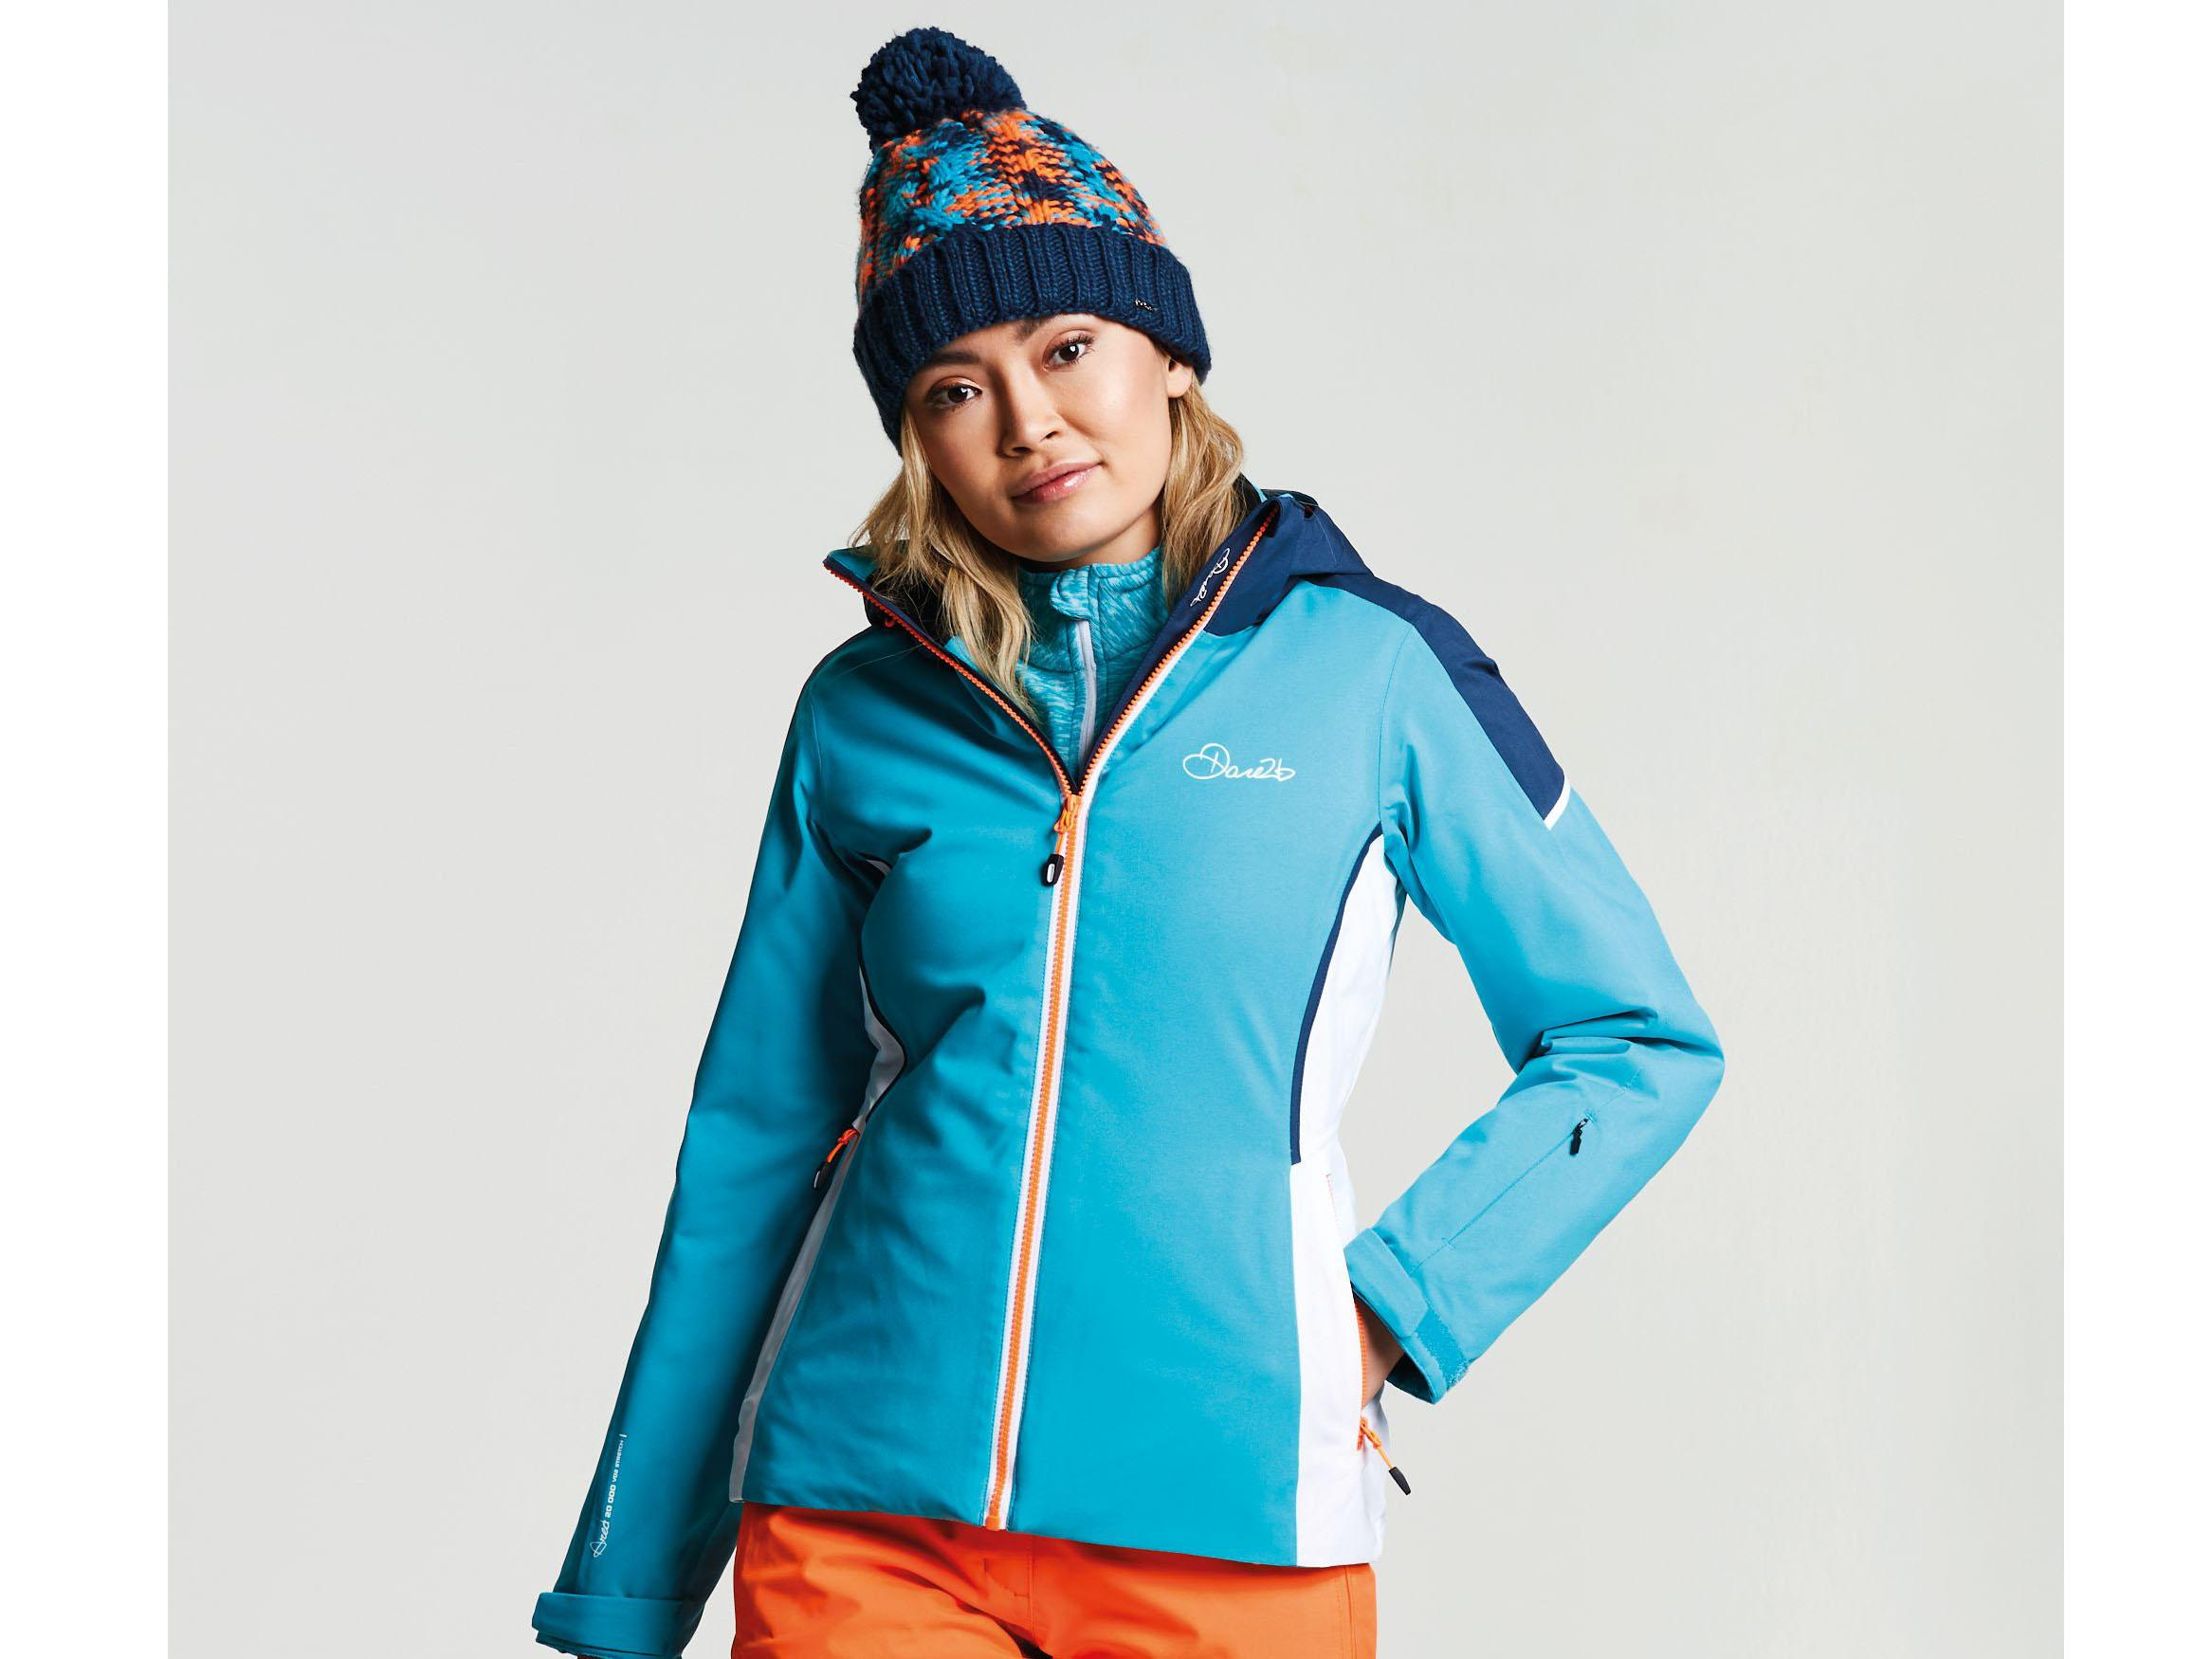 Best women's ski wear: the hottest pieces to hit the slopes in